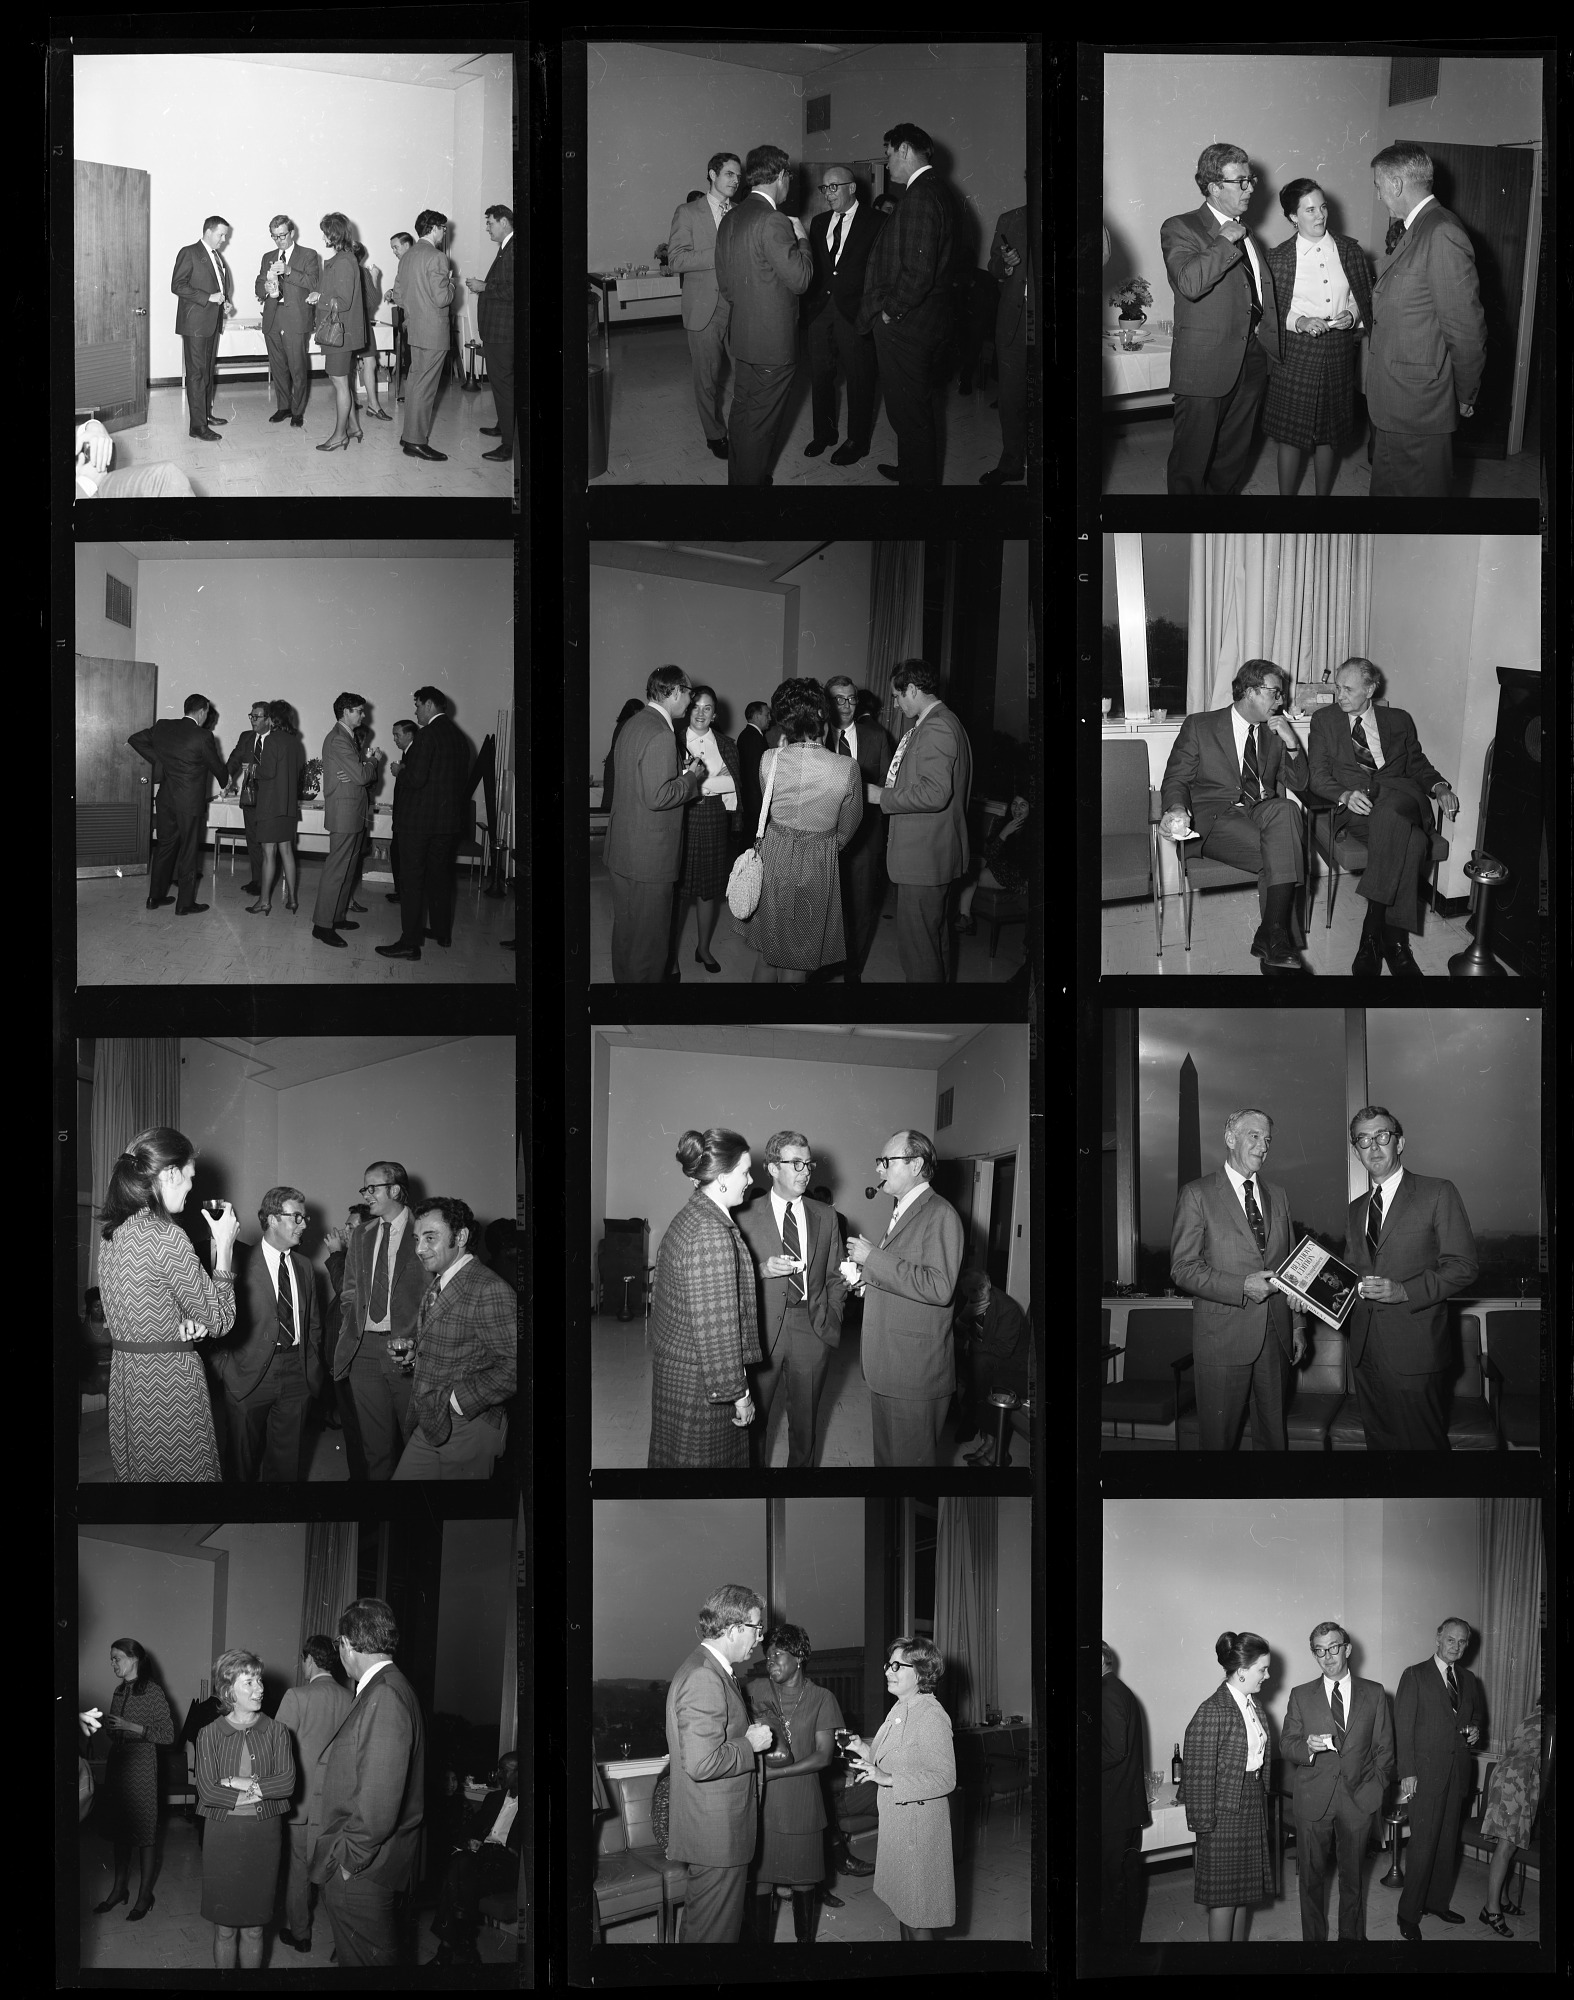 Reception for Peter C. Welsh, 1971, Smithsonian Institution Archives, SIA Acc. 11-009 [72-865].